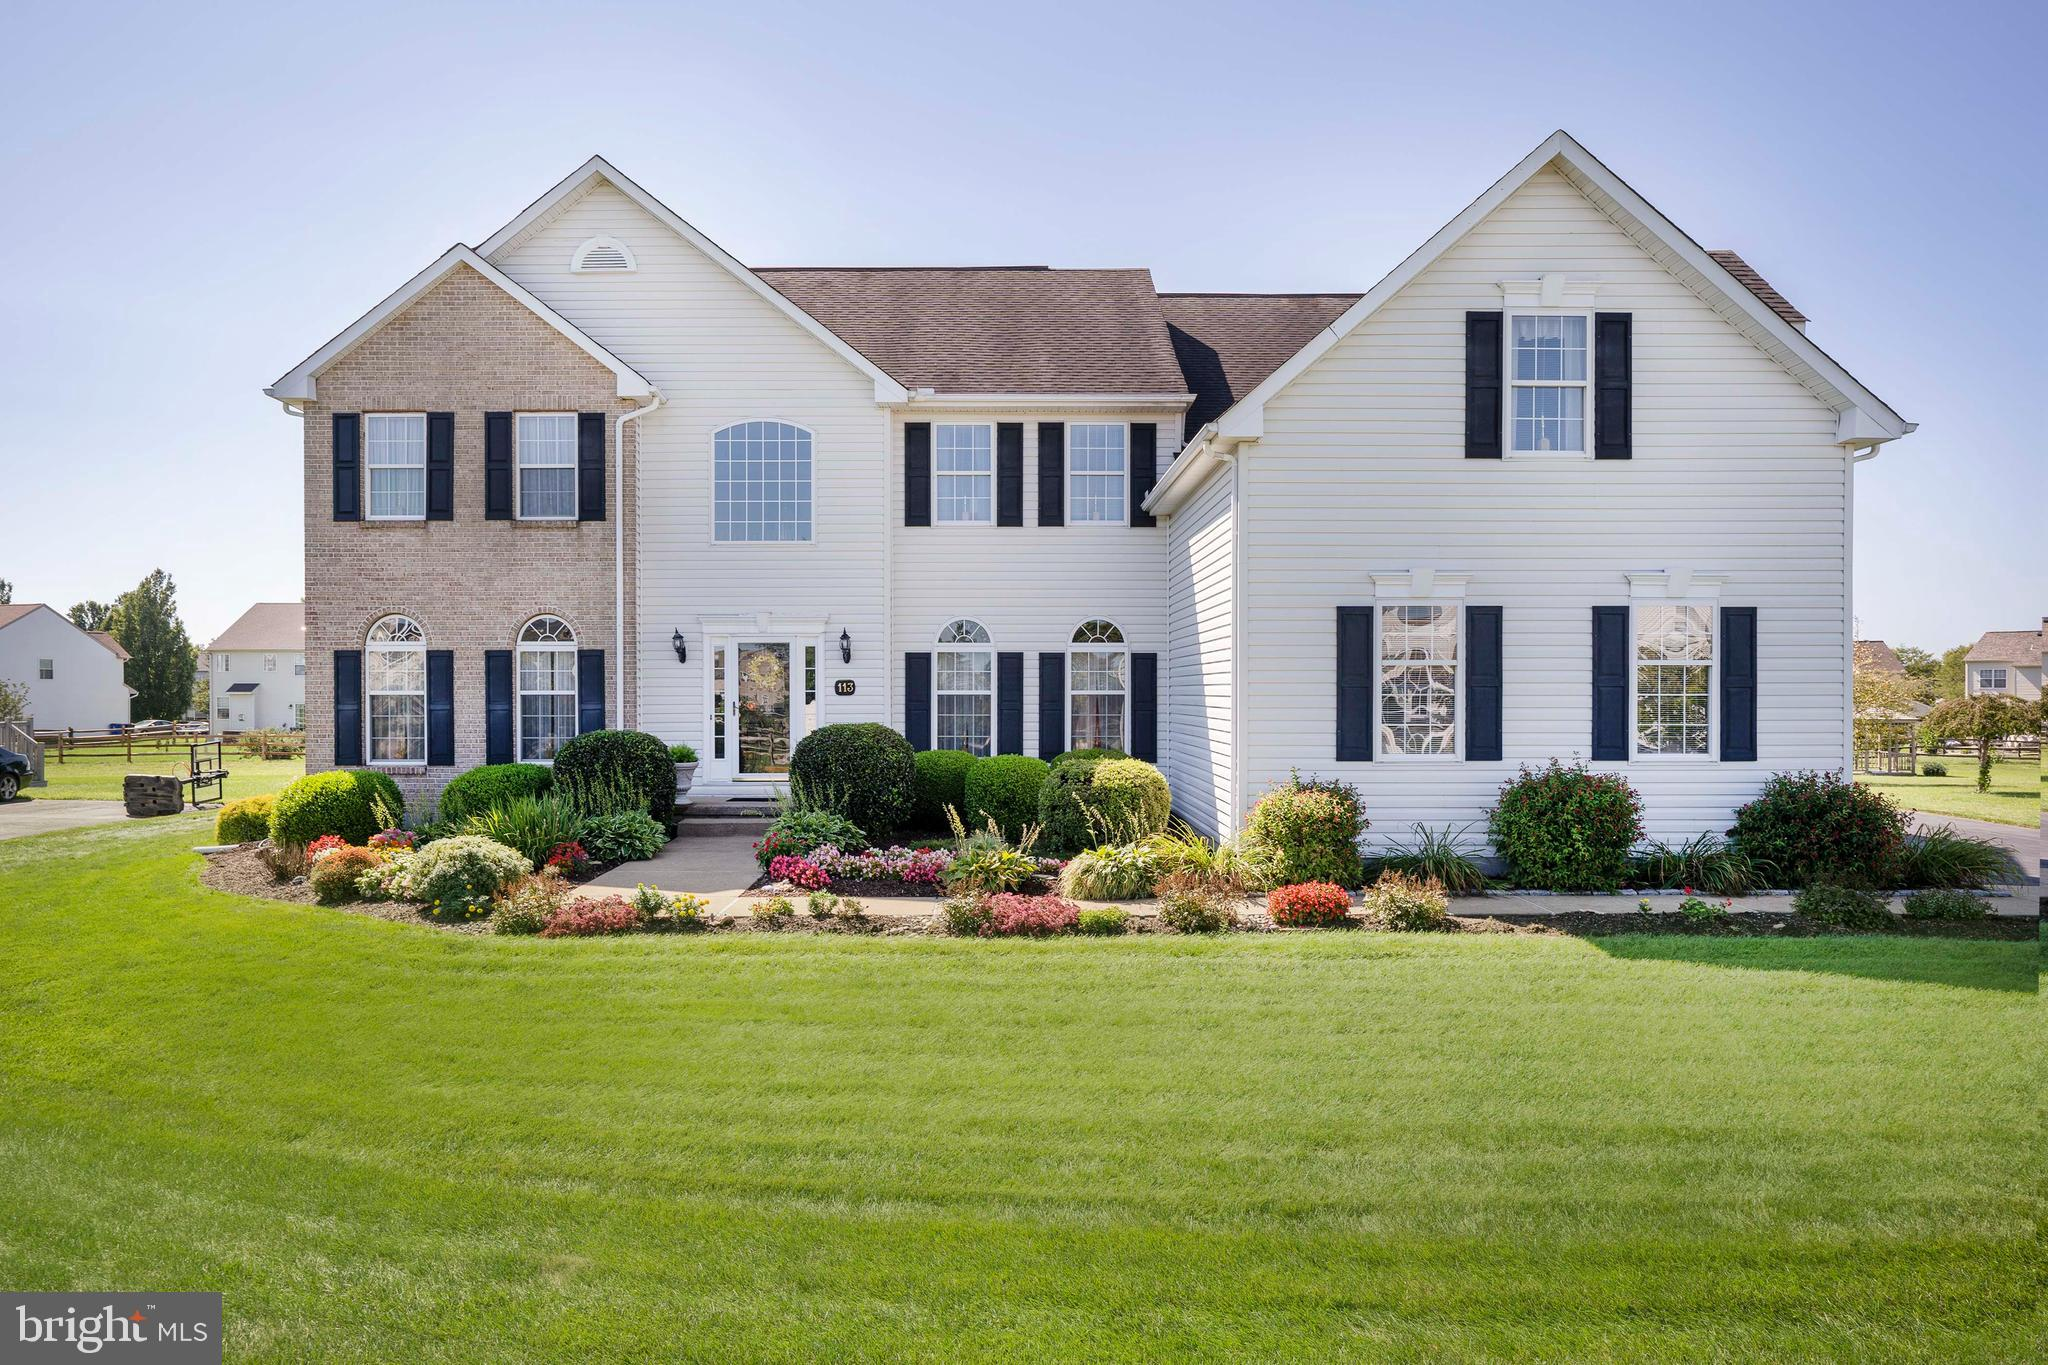 **Awaiting Signatures** **Highest and Best Offers Due 9/12 at 8pm** Will respond to offers Monday by noon! Welcome to 113 Amberwood, Located Within the Friendly Community of Amberwood, in the Award Winning Appoquinimink School District! Situated on a .51 Acre Lot, and Lined with Beautiful Landscaping, this Home is Truly as Stunning on the Outside as it is on the Inside! Upon Entering this Home you'll be Greeted with an Open Arrangement of Living Space Creating a Bright, Airy Atmosphere Throughout the Home. The Open Concept Floor Plan Includes a Family Room Which Flows Perfectly into the Eat-In Kitchen featuring Maple Cabinets, Granite Countertops and Tile Flooring which Allows Plenty of Space for Gatherings. The First Floor Laundry Area Features Ample Storage Space and is Conveniently Located just off the Kitchen. A Formal Living & Dining Room (with Custom Built in's) and A Home Office Complete the 1st Floor. Take a Short Cut through the Family Room up the Back Staircase to the Second Floor! The Second Level Boasts 4 Spacious Bedrooms, a Master Bath and a Full Hall Bath. Experience a Night of Relaxation in the Large Soaking Tub in the Master Bath, Additional Features Include an Enclosed Shower and Double Vanity Sink. The Master Bedroom comes Complete with a Large Sitting Area and Custom Built in's in the Walk In Closet. The Rear Sliders Lead to the Large Trex Deck with Custom Electric Awning.  The Pergola out Back with Paved Patio makes this an Owner's Outdoor Oasis. This Home is in a Great Location just off of Route 896. Enjoy Shopping, Dining and all the Great Amenities this Area has to Offer! Call to Schedule your Exclusive Tour Today!